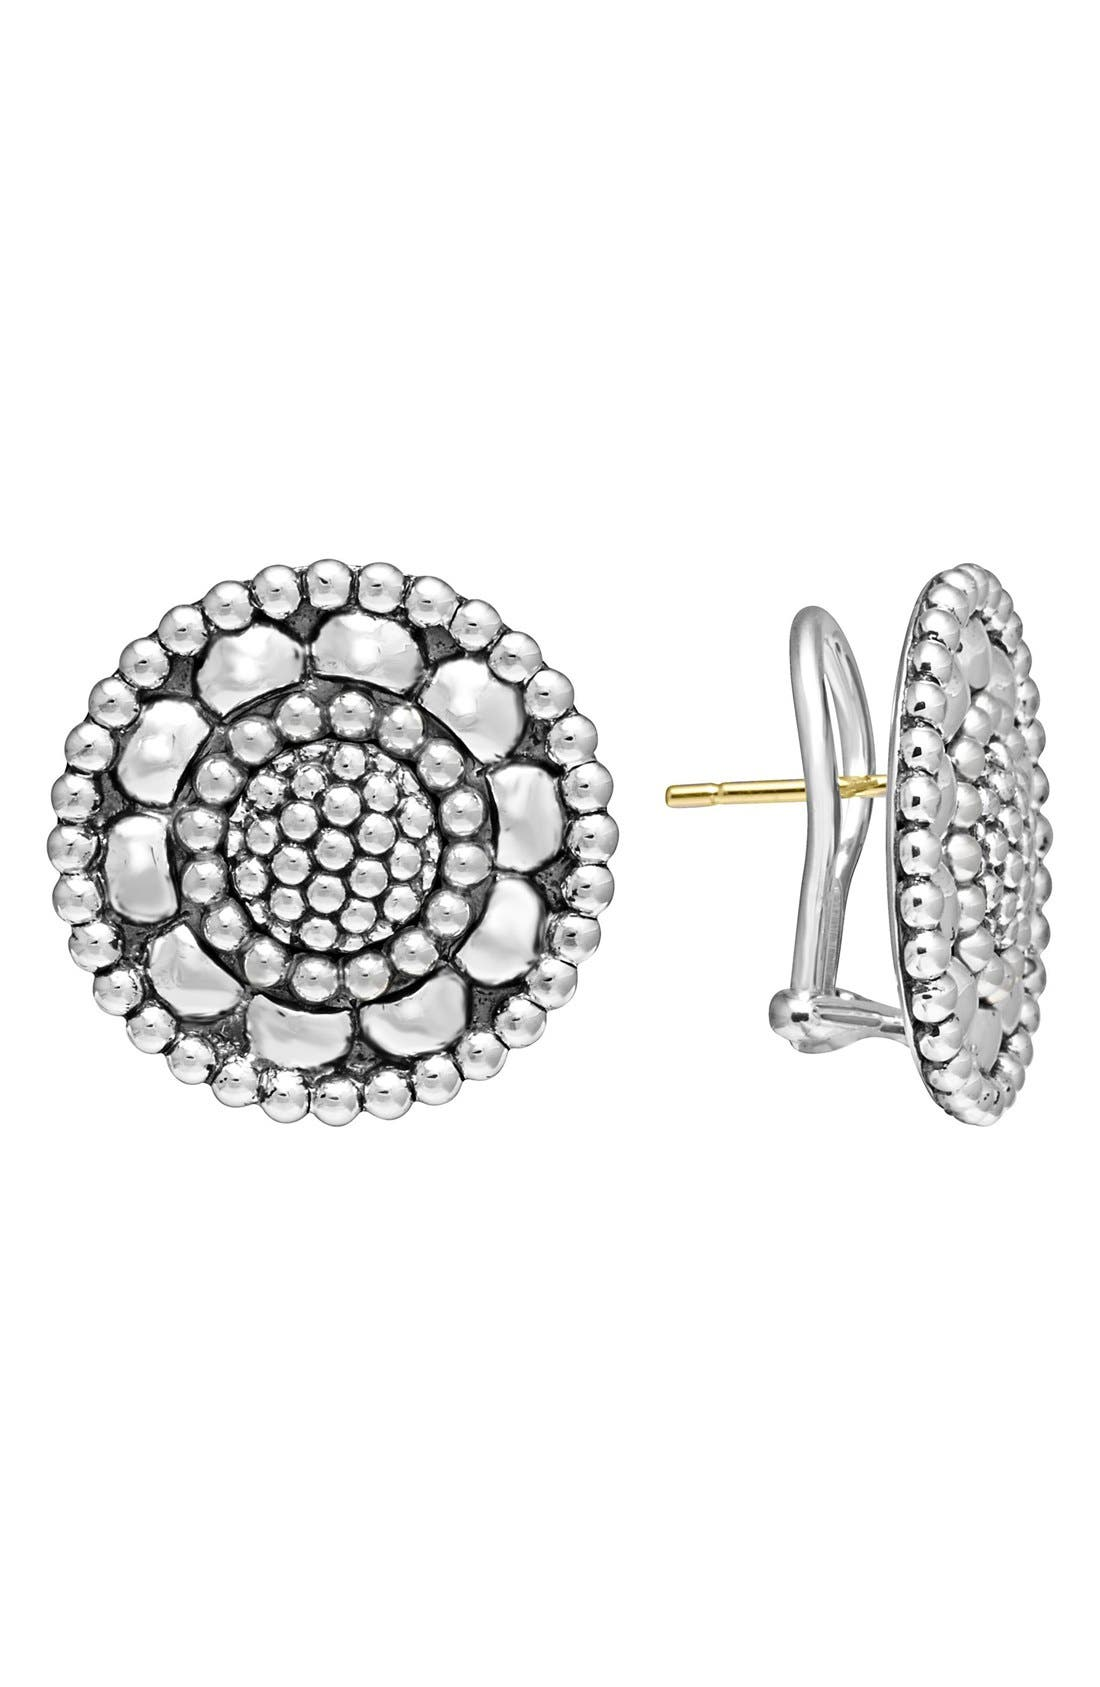 Alternate Image 1 Selected - LAGOS 'Voyage' Caviar Stud Earrings